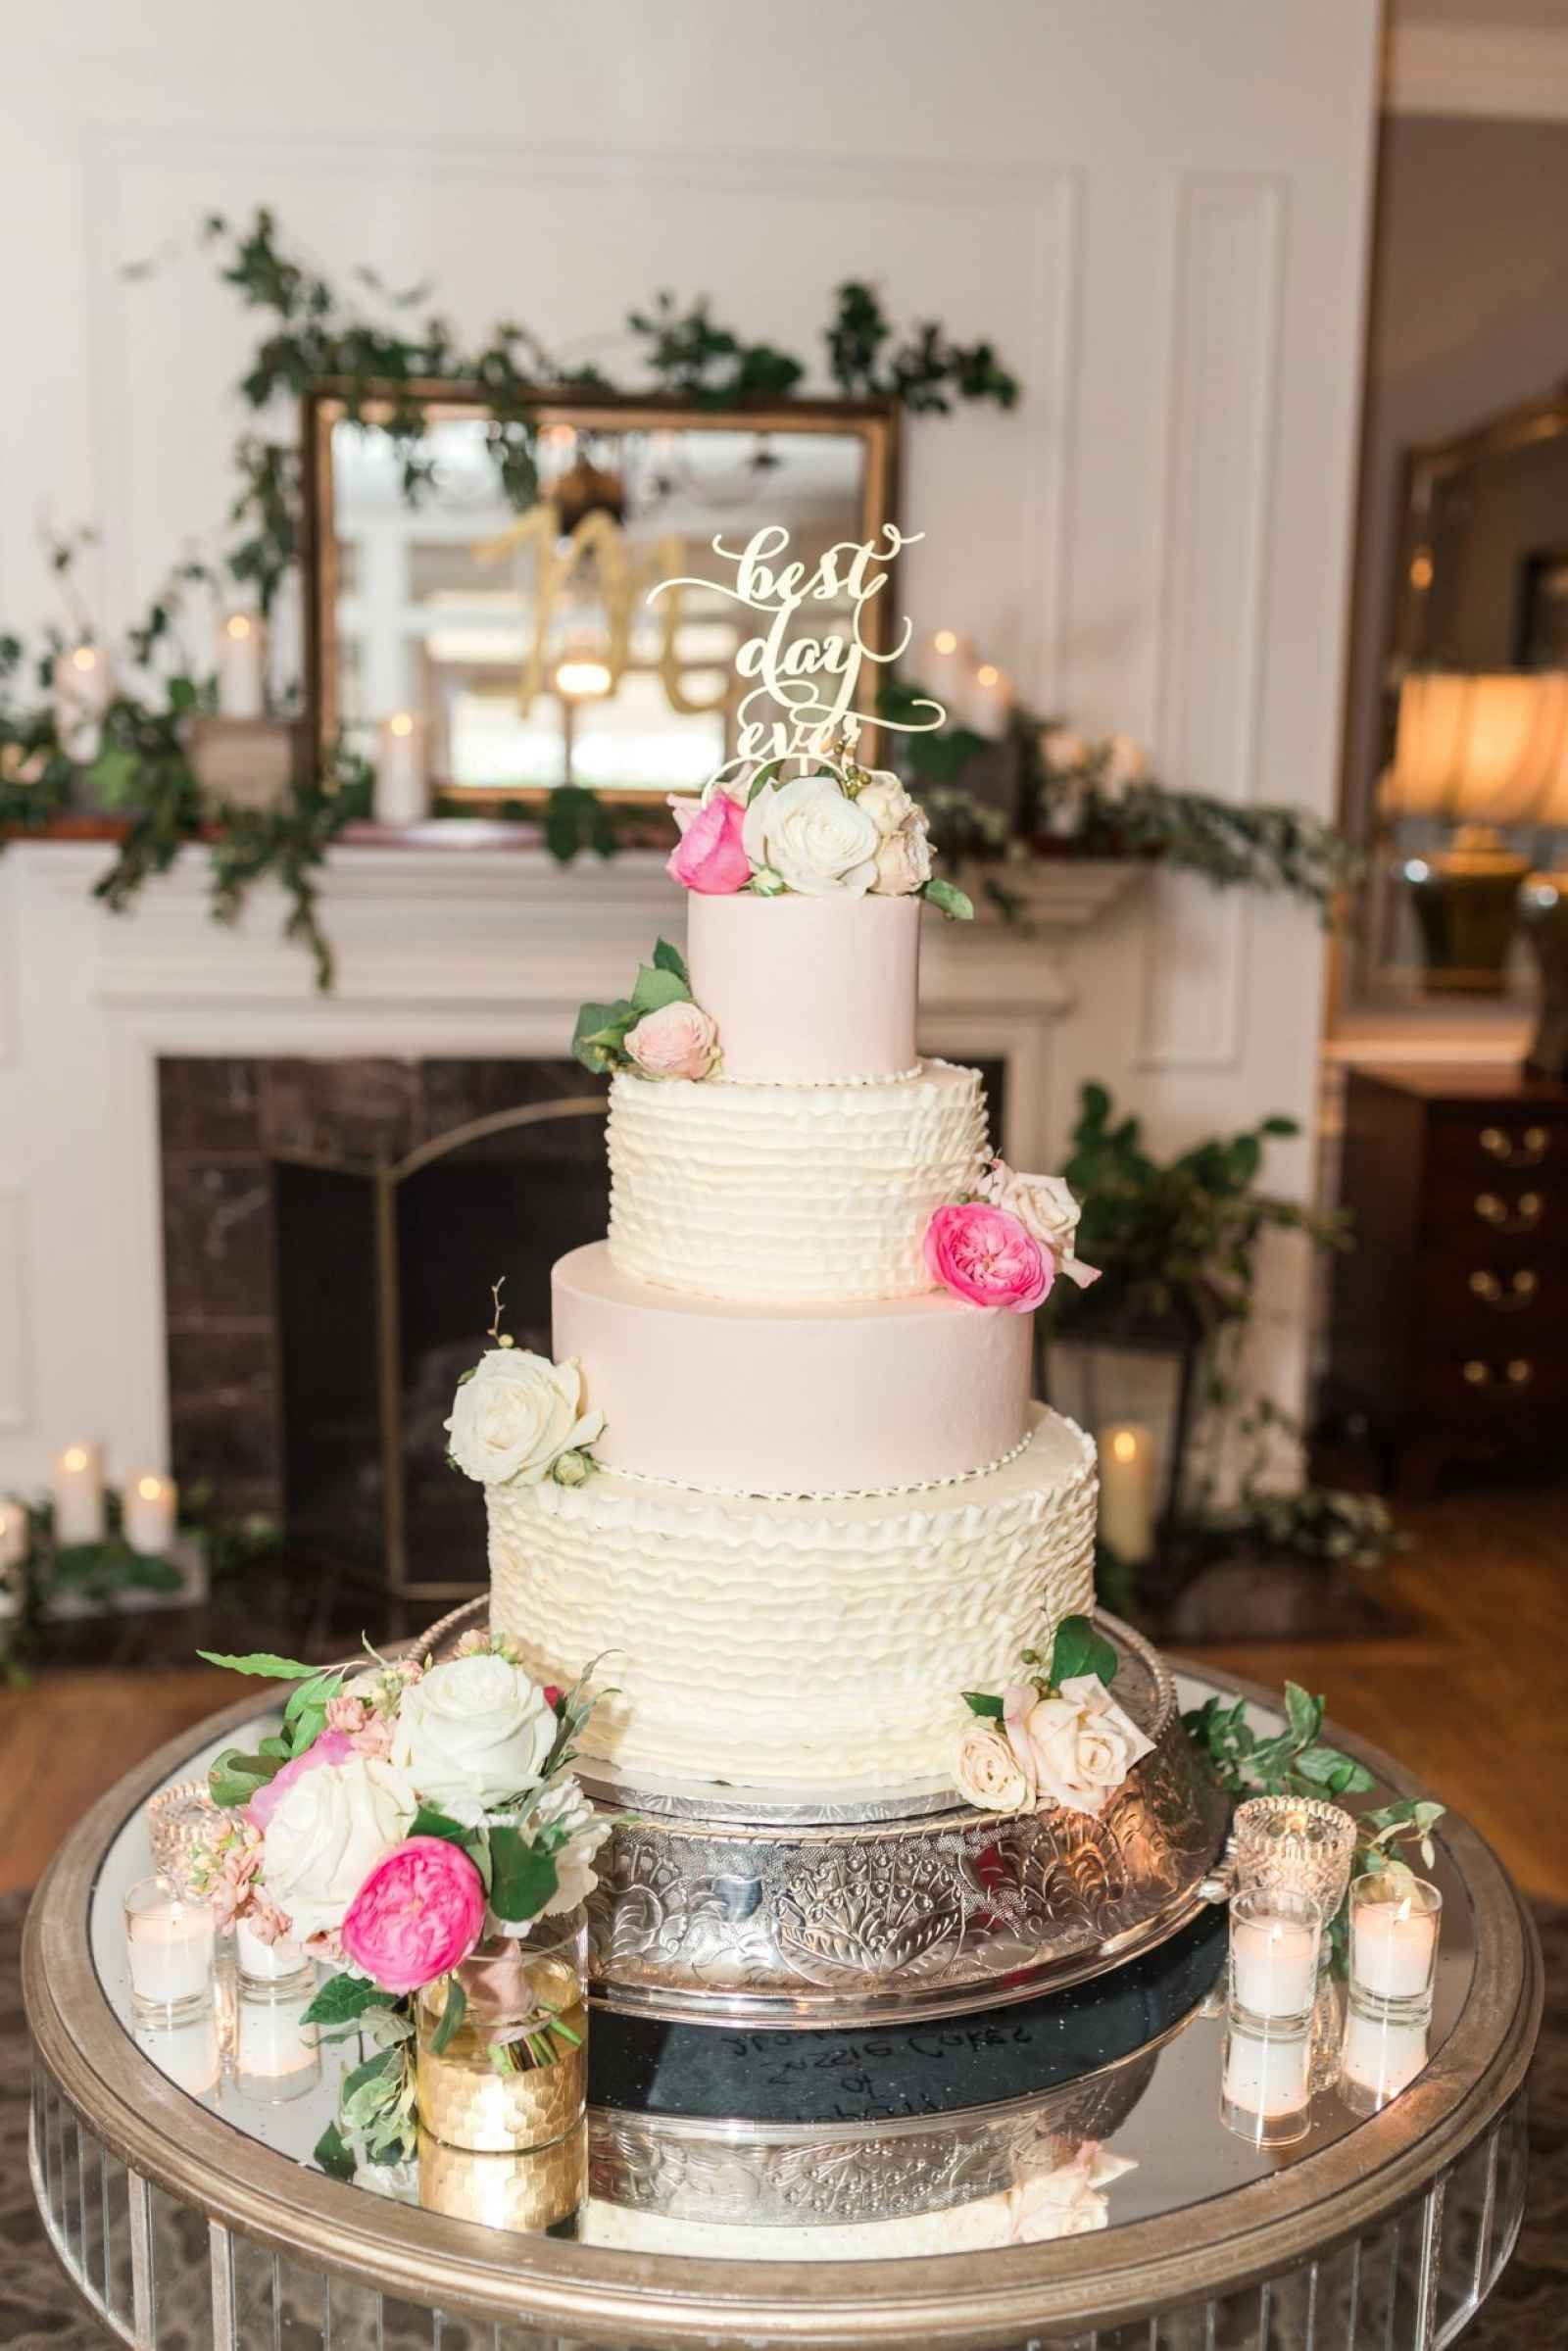 White And Pale Pink Cake Flowers On Wedding Cake Silver Bottom